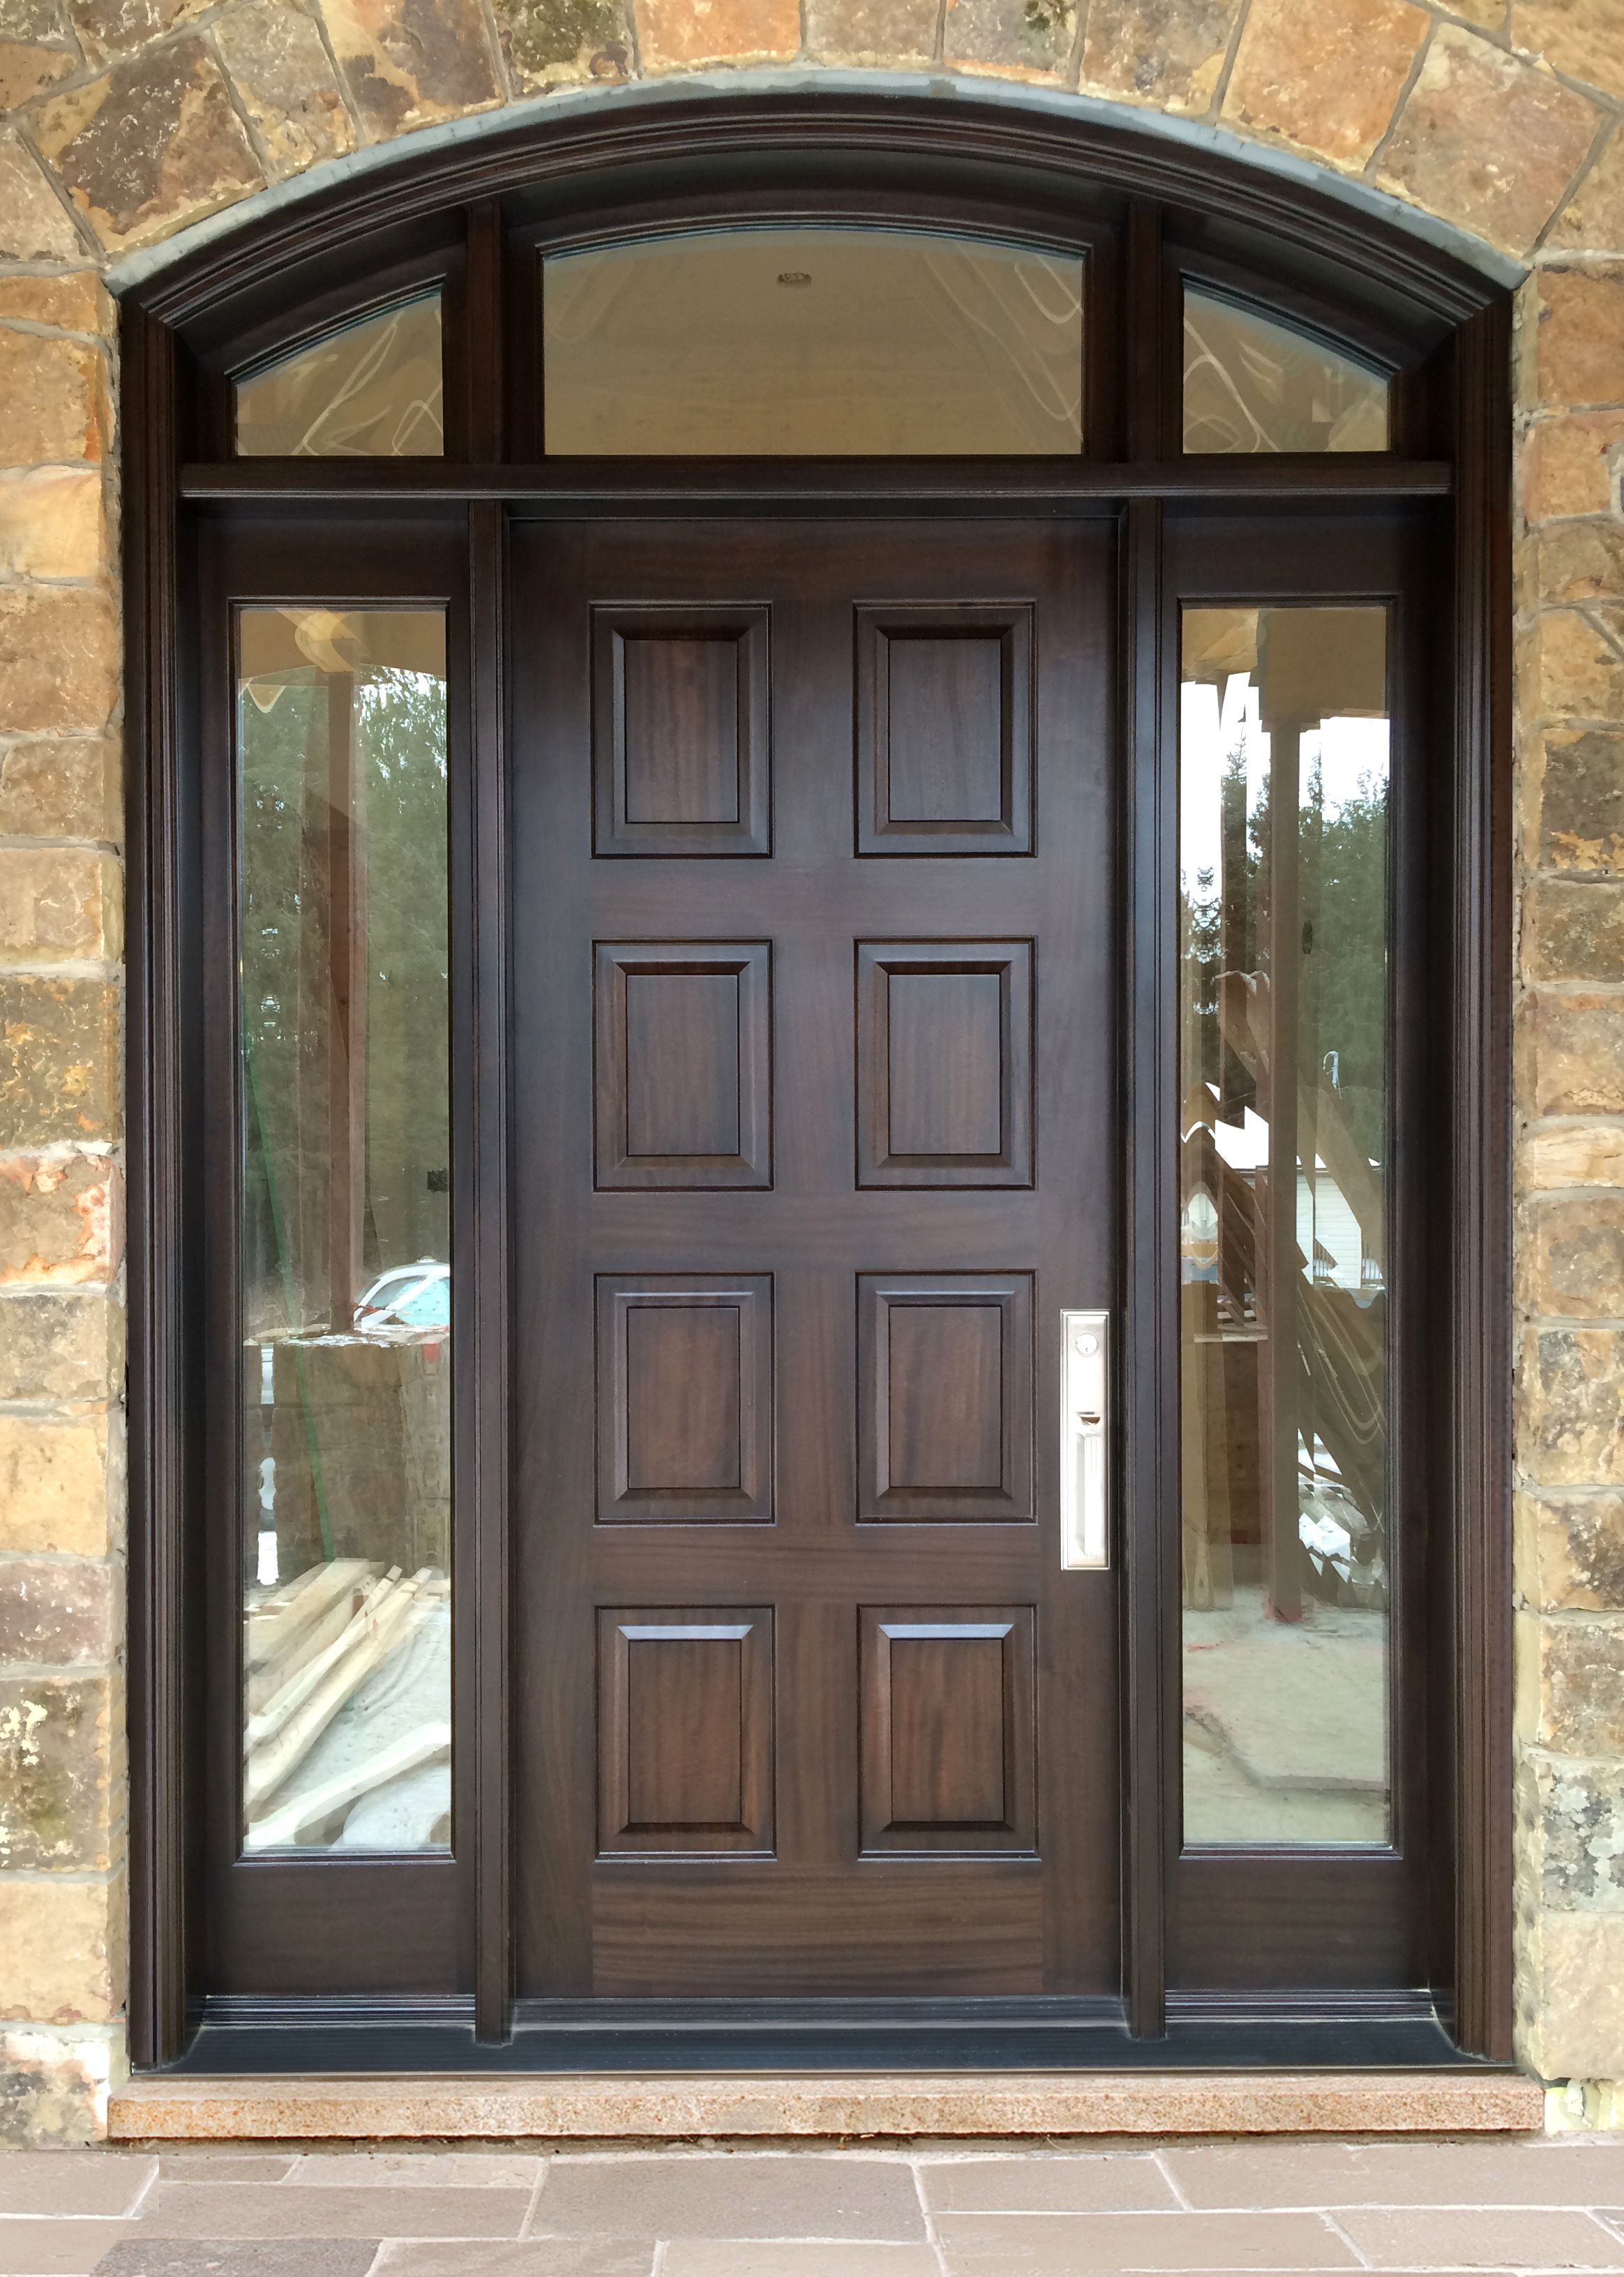 This home owner is ecstatic about their elegant for Front entry doors with sidelights